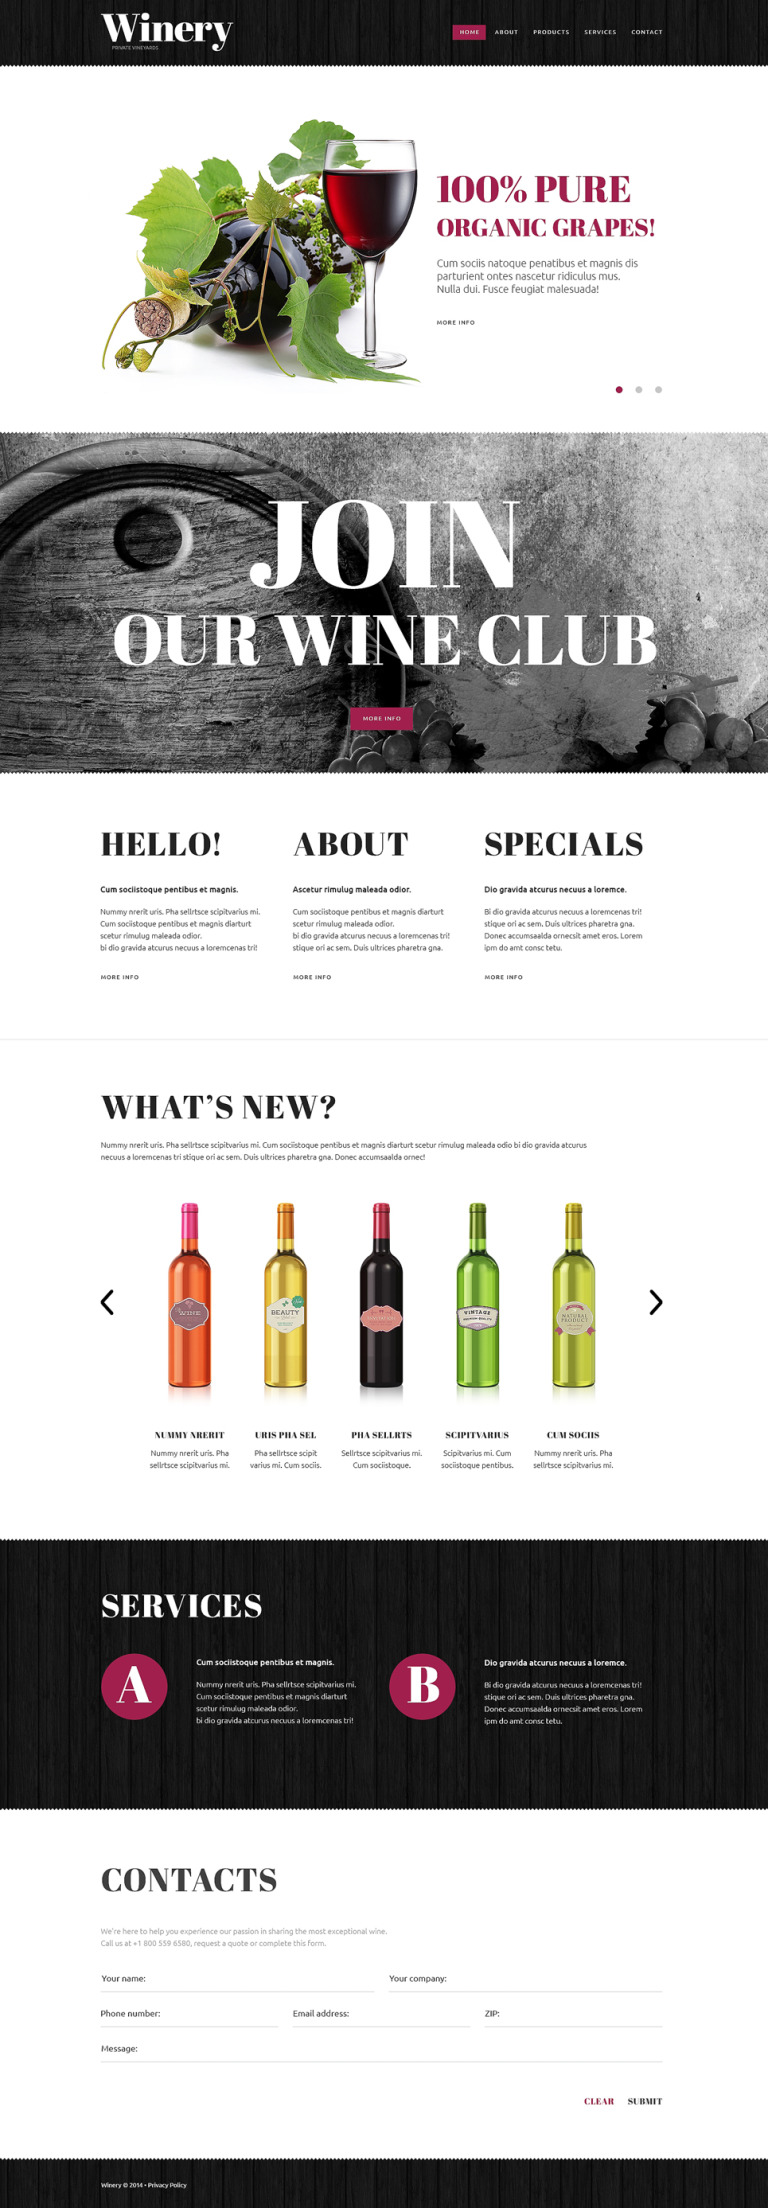 Winery Website Template New Screenshots BIG